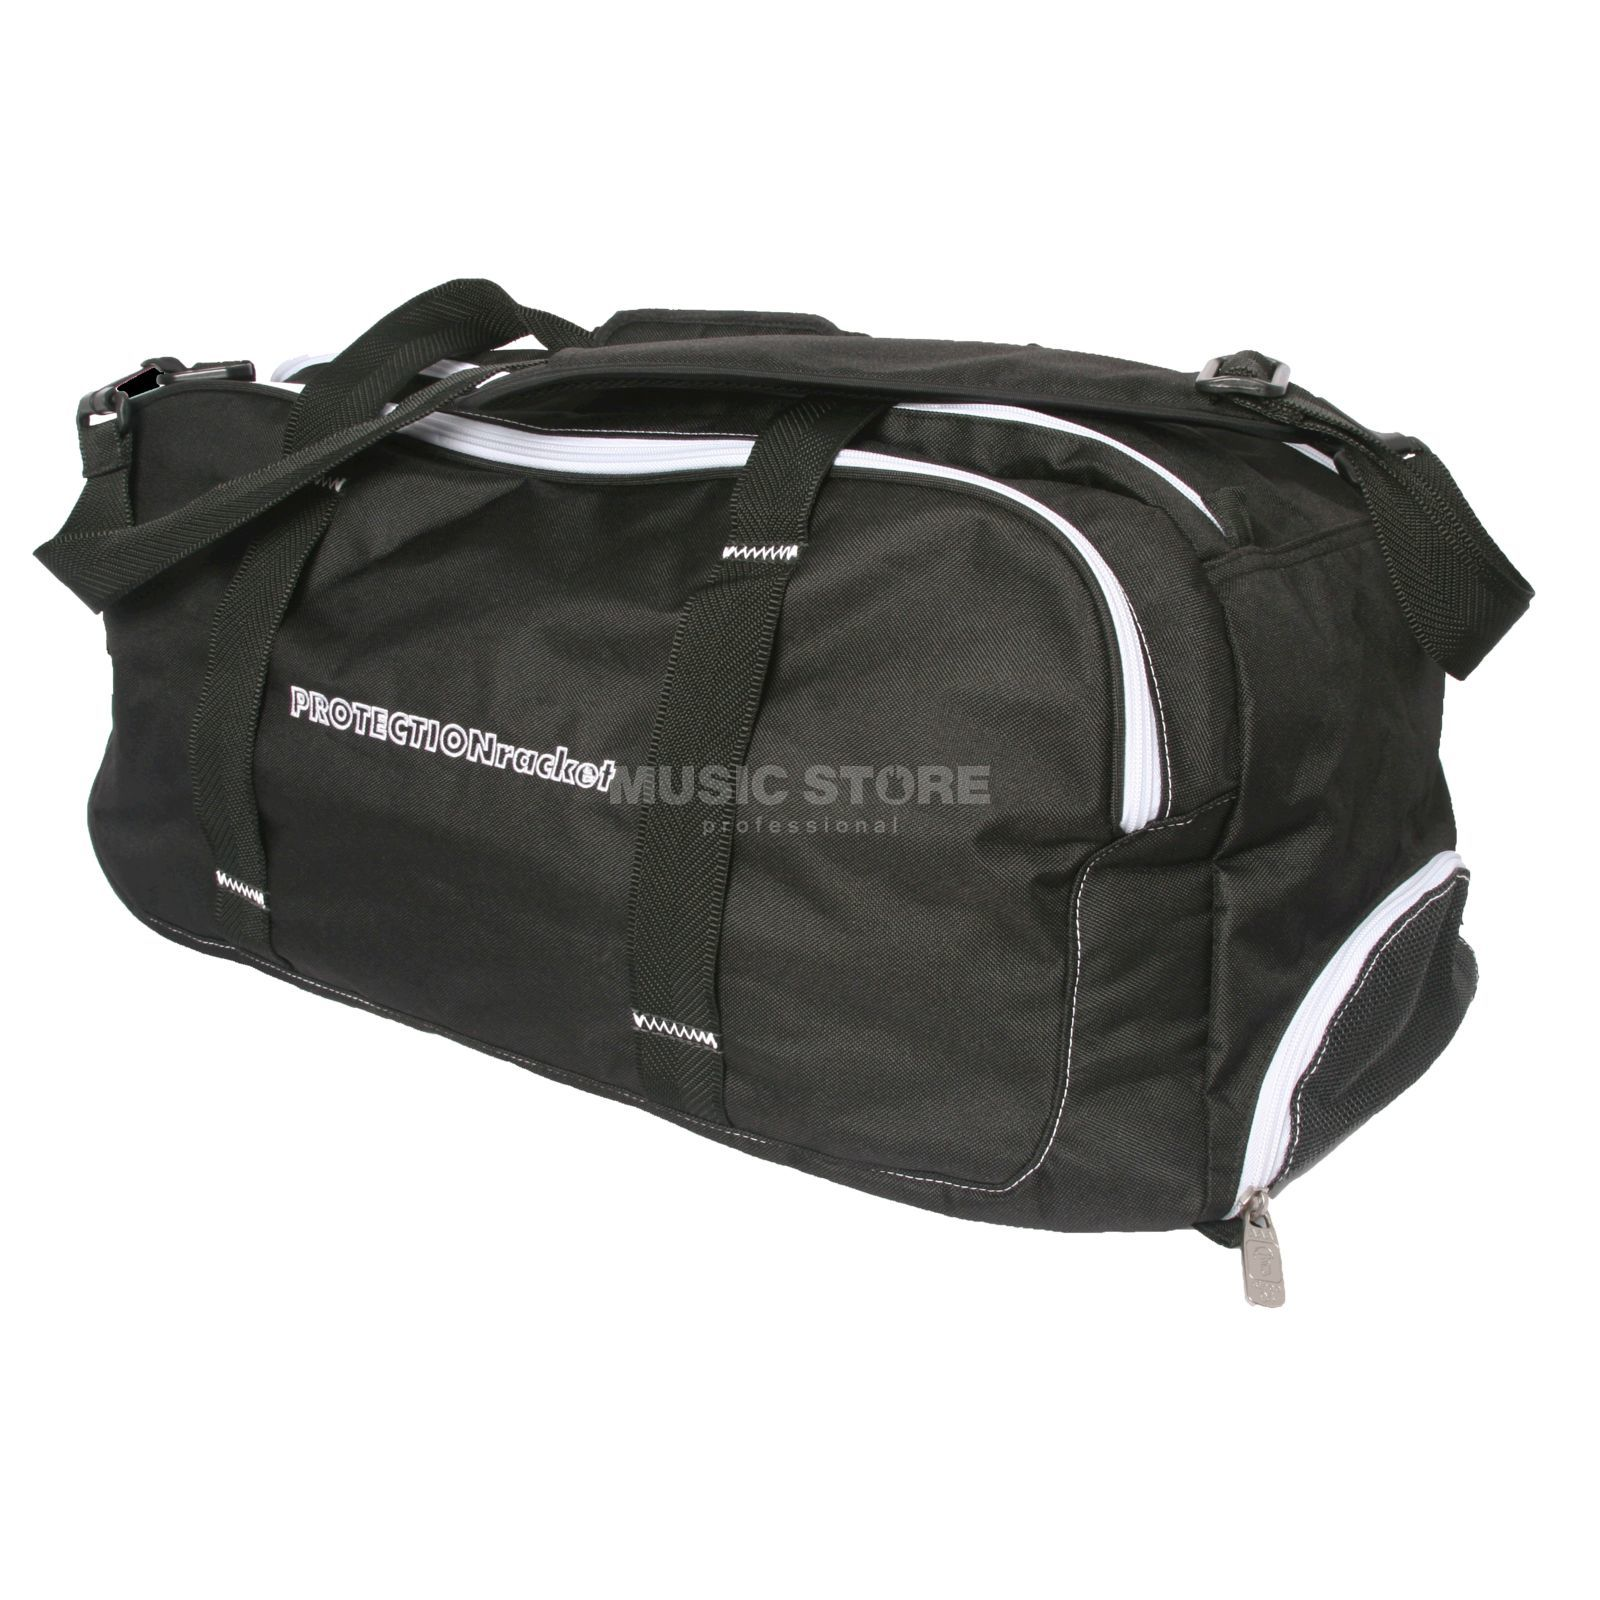 Protection Racket Multi Purpose CarryBag 9260-23 Produktbillede